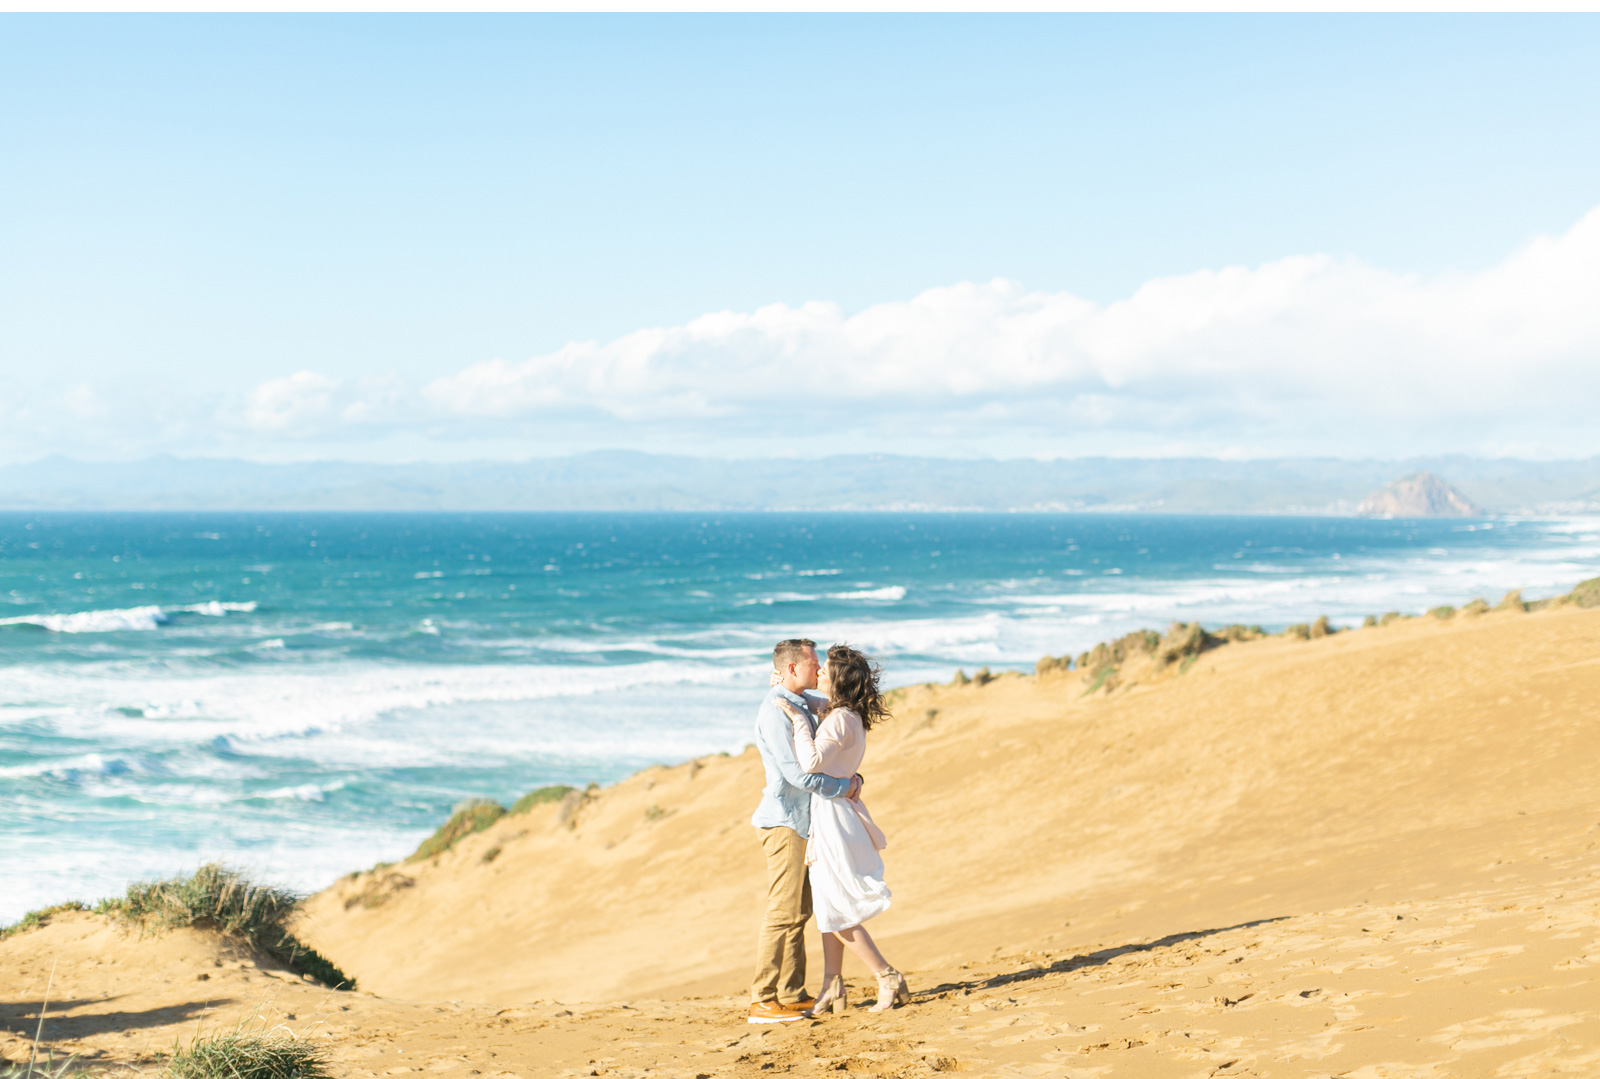 Natalie-Schutt-Photography-Malibu-Engagements-Malibu-Wedding-Beachside-Wedding-Fine-Art-Wedding-Photography-Southern-California-Brides_01.jpg